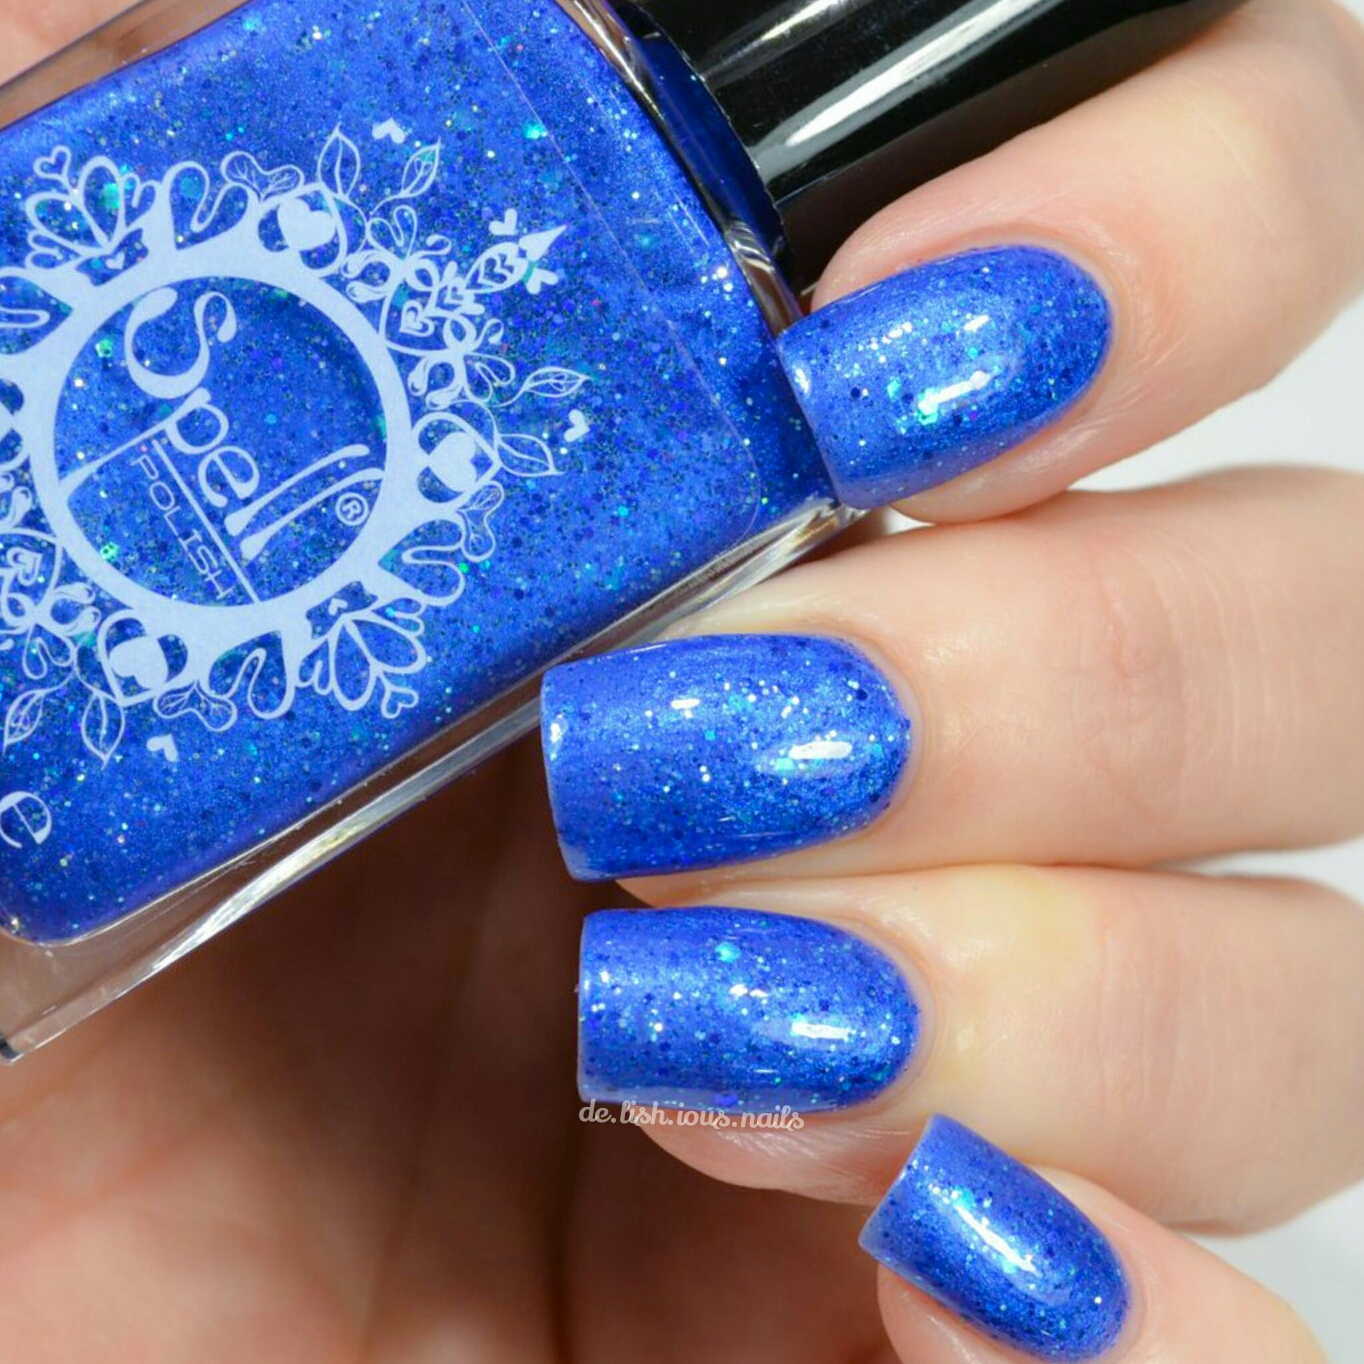 Spell_polish_a_dusting_of_stars_1